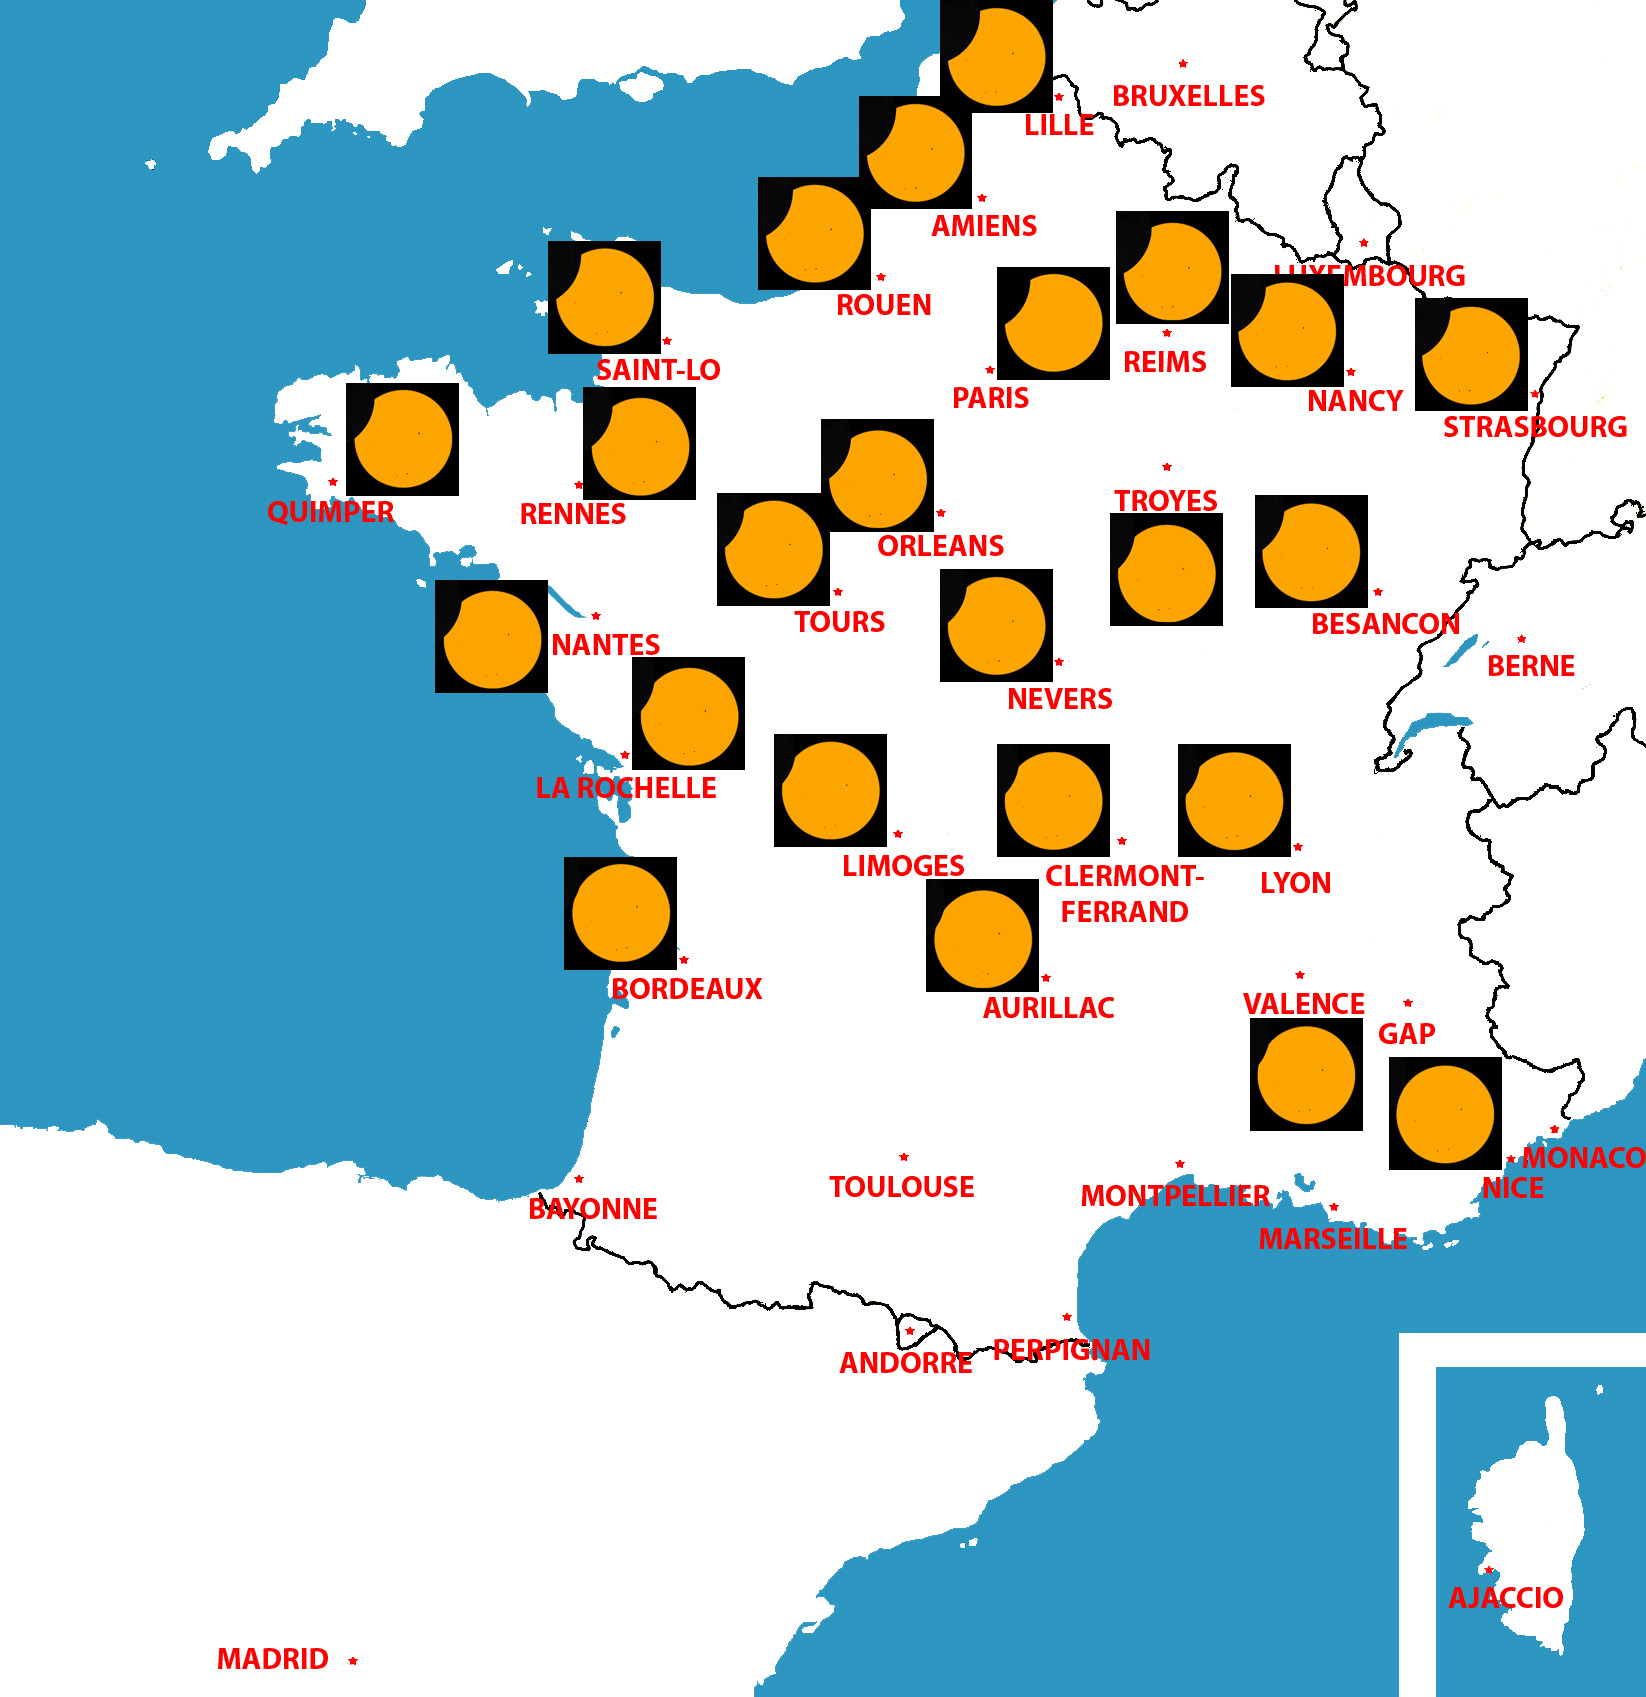 http://www.futura-sciences.com/fileadmin/Fichiers/images/Univers/EclipseAout2008_FRANCE.jpg